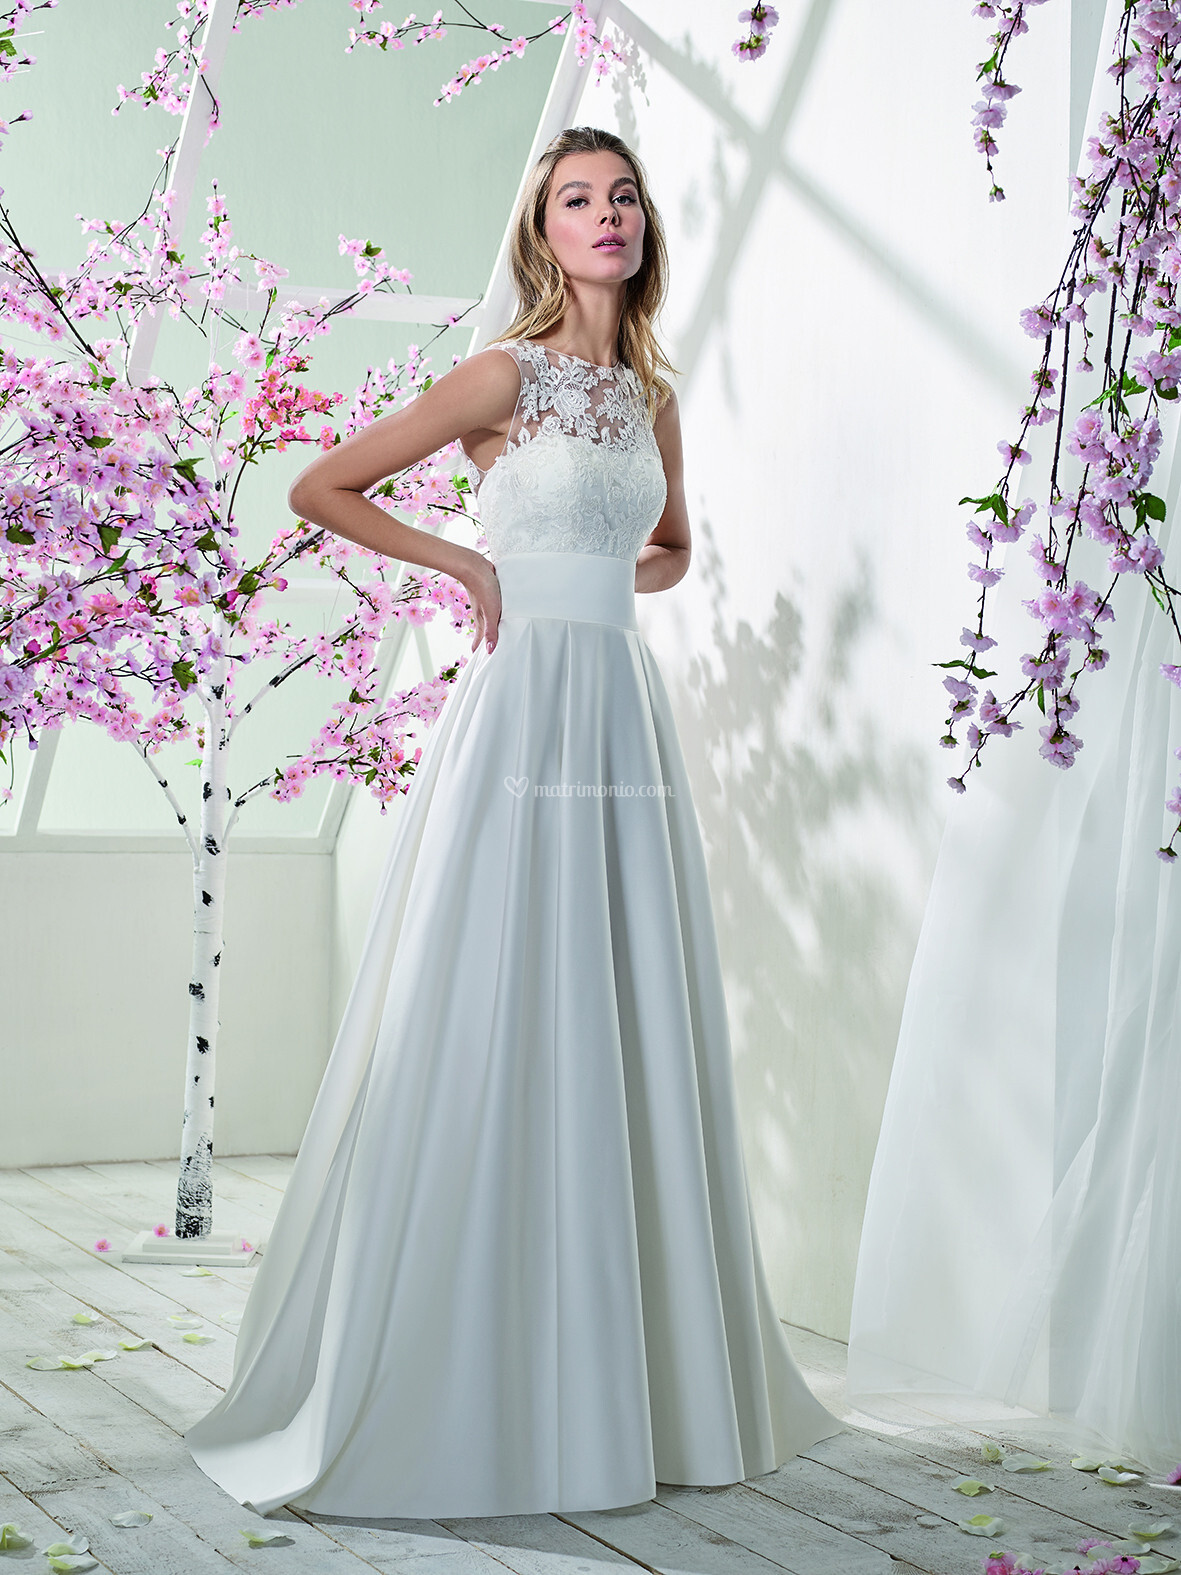 Abiti da Sposa di Just for you - Matrimonio.com 2186855558f